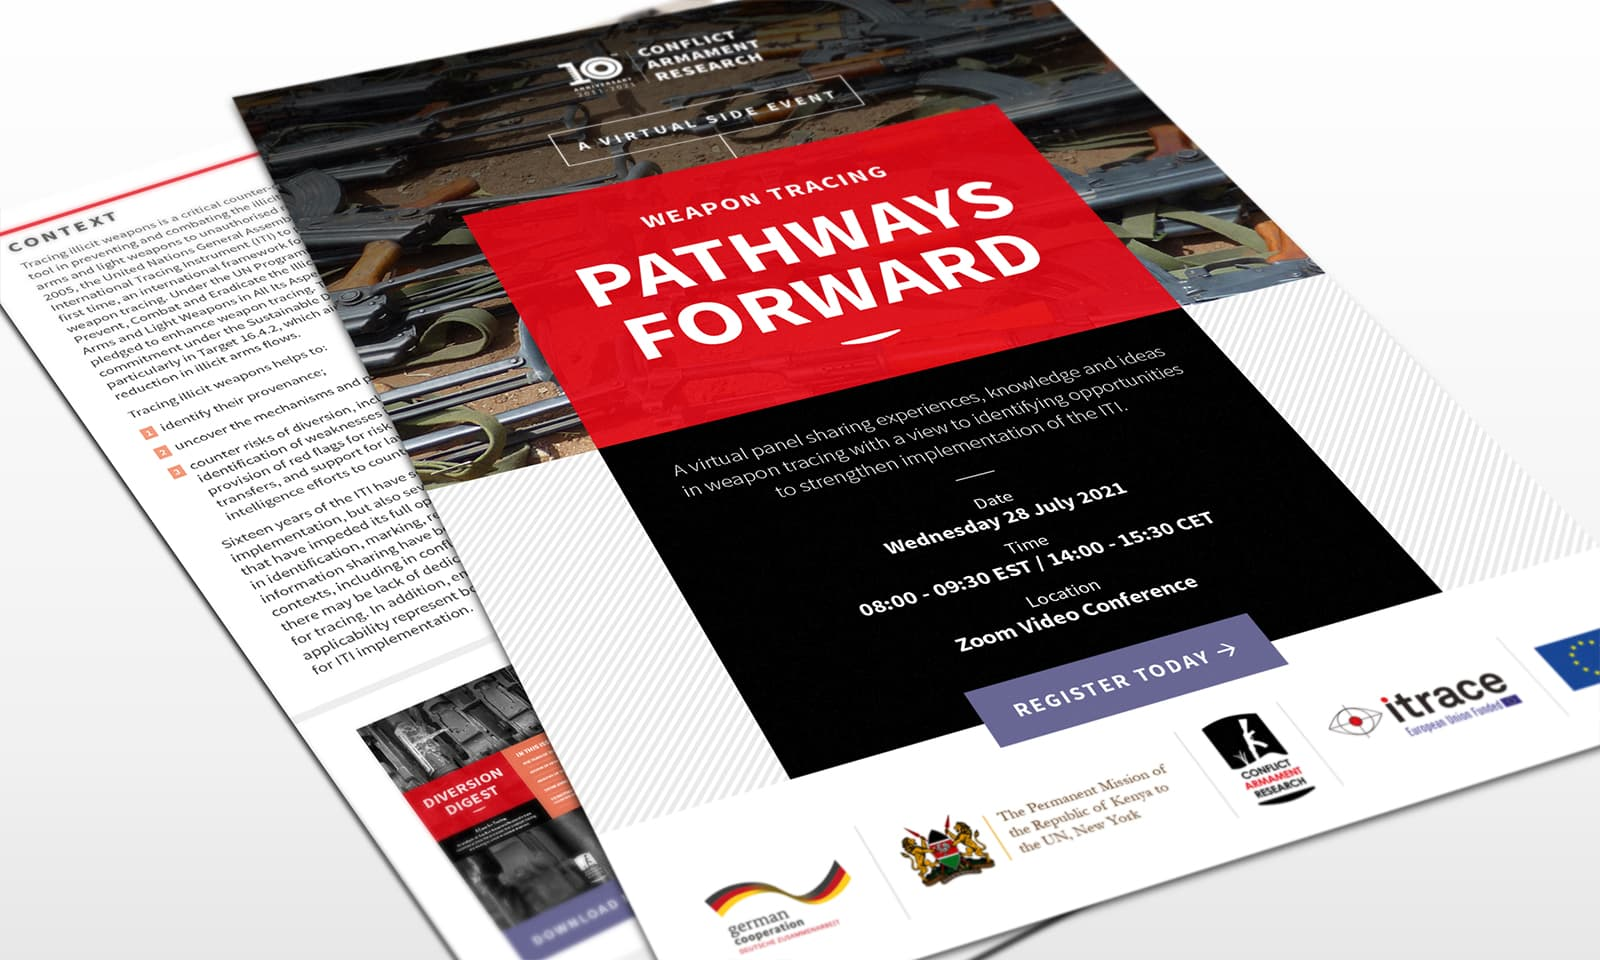 Pathways Forward - a weapon tracing conference - front side